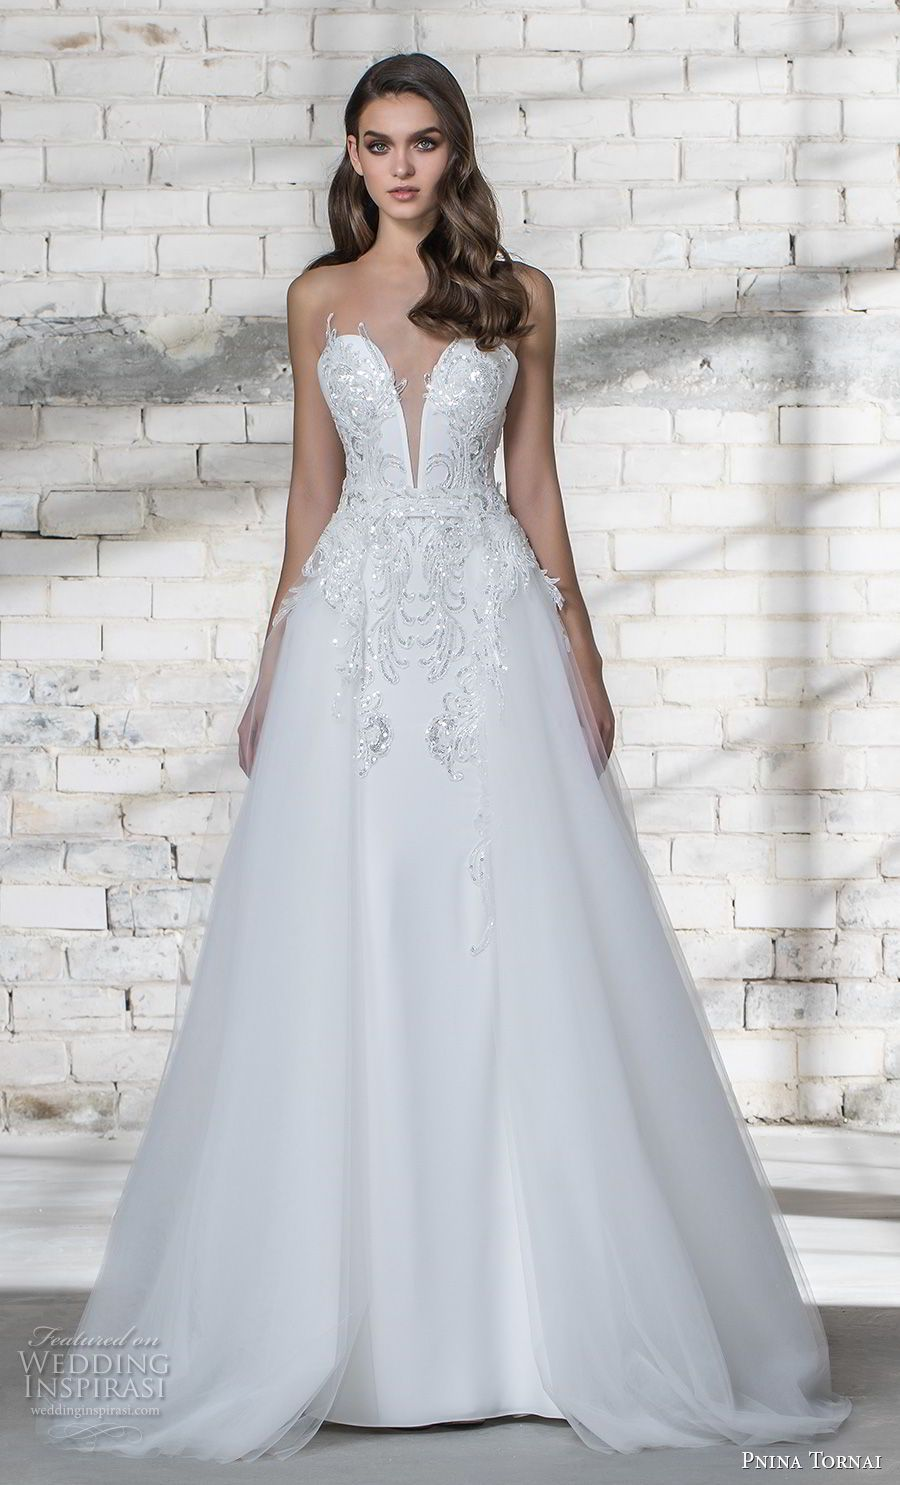 06086f38fa1 pnina tornai 2019 love bridal strapless deep plunging sweetheart neckline  heavily embellished bodice glitzy romantic sheath